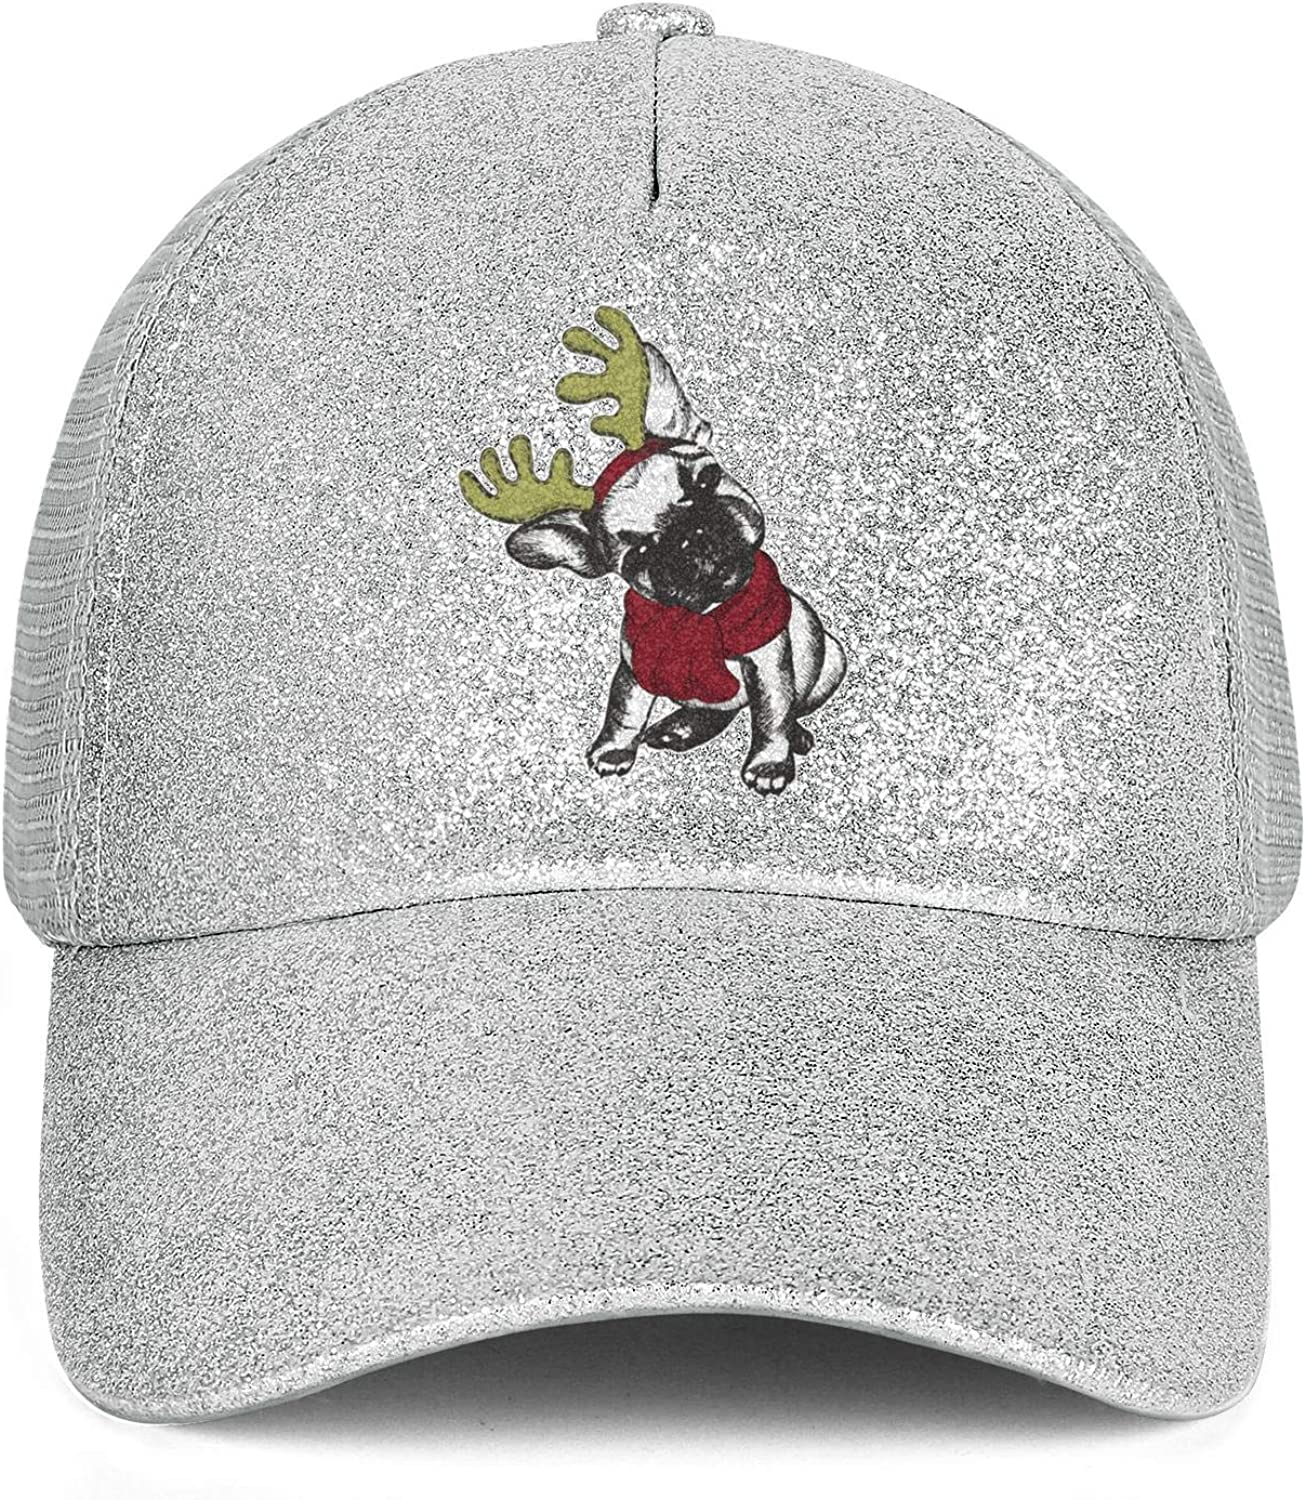 Sale23 French Bulldog Christmas Moose HornWomenMeshBallPonytail Messy Cap Adjustable SnapbackSun Hat